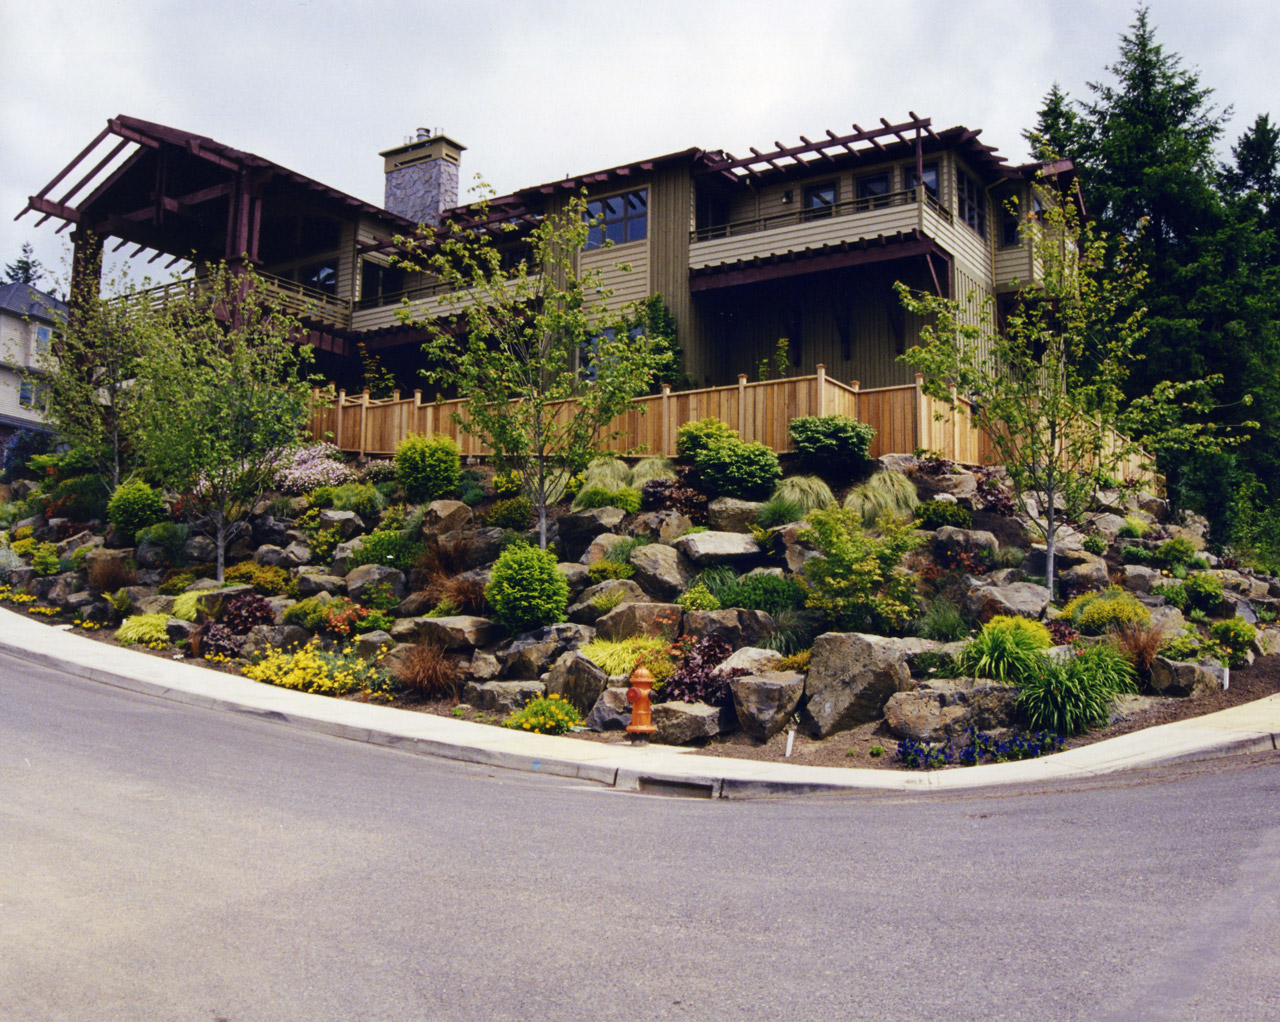 Landscaping ideas on a slope landscape